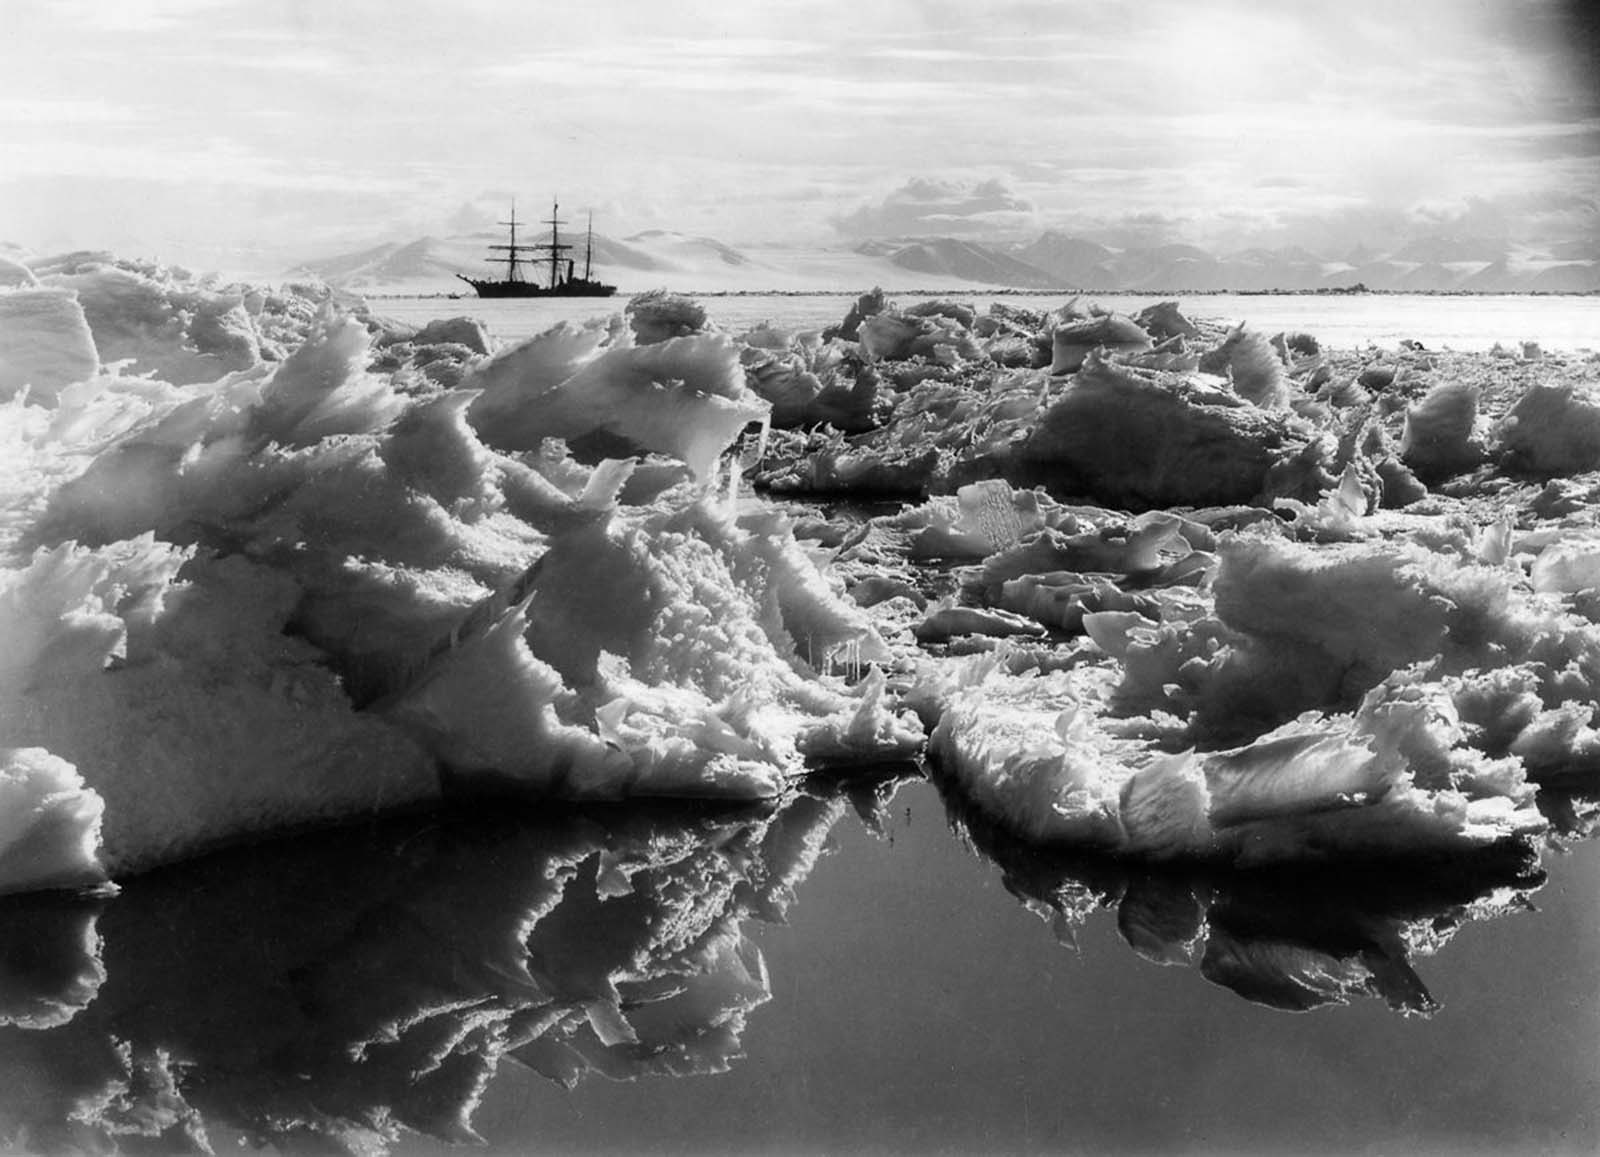 The Terra Nova anchored in McMurdo Sound. 1911.